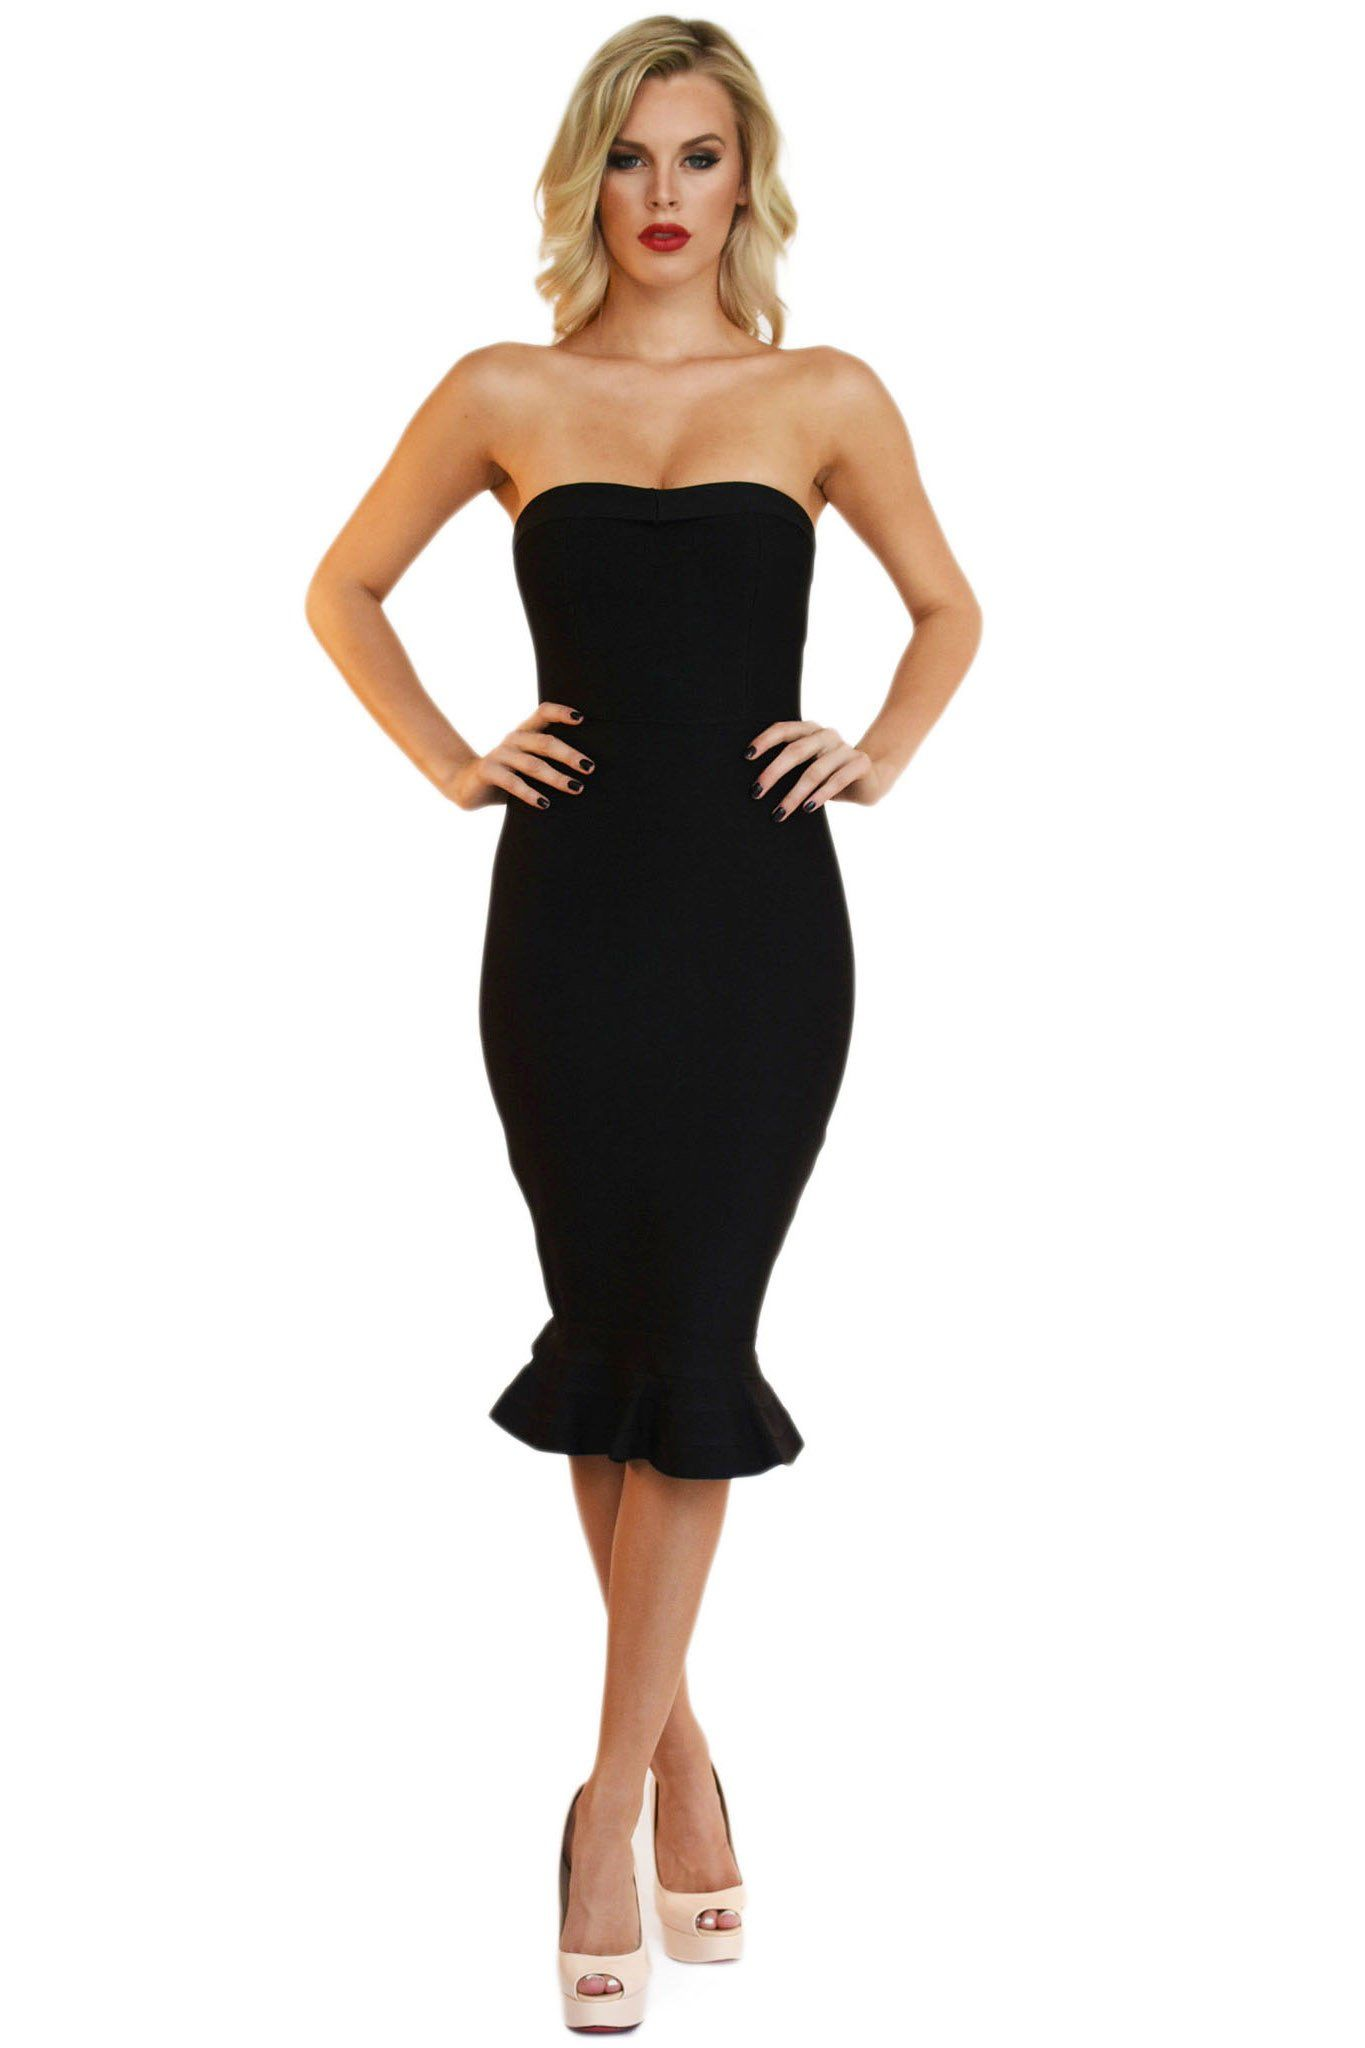 Black sleeveless strapless midi bandage dress with subtle sweetheart neckline and peplum fishtail hem design